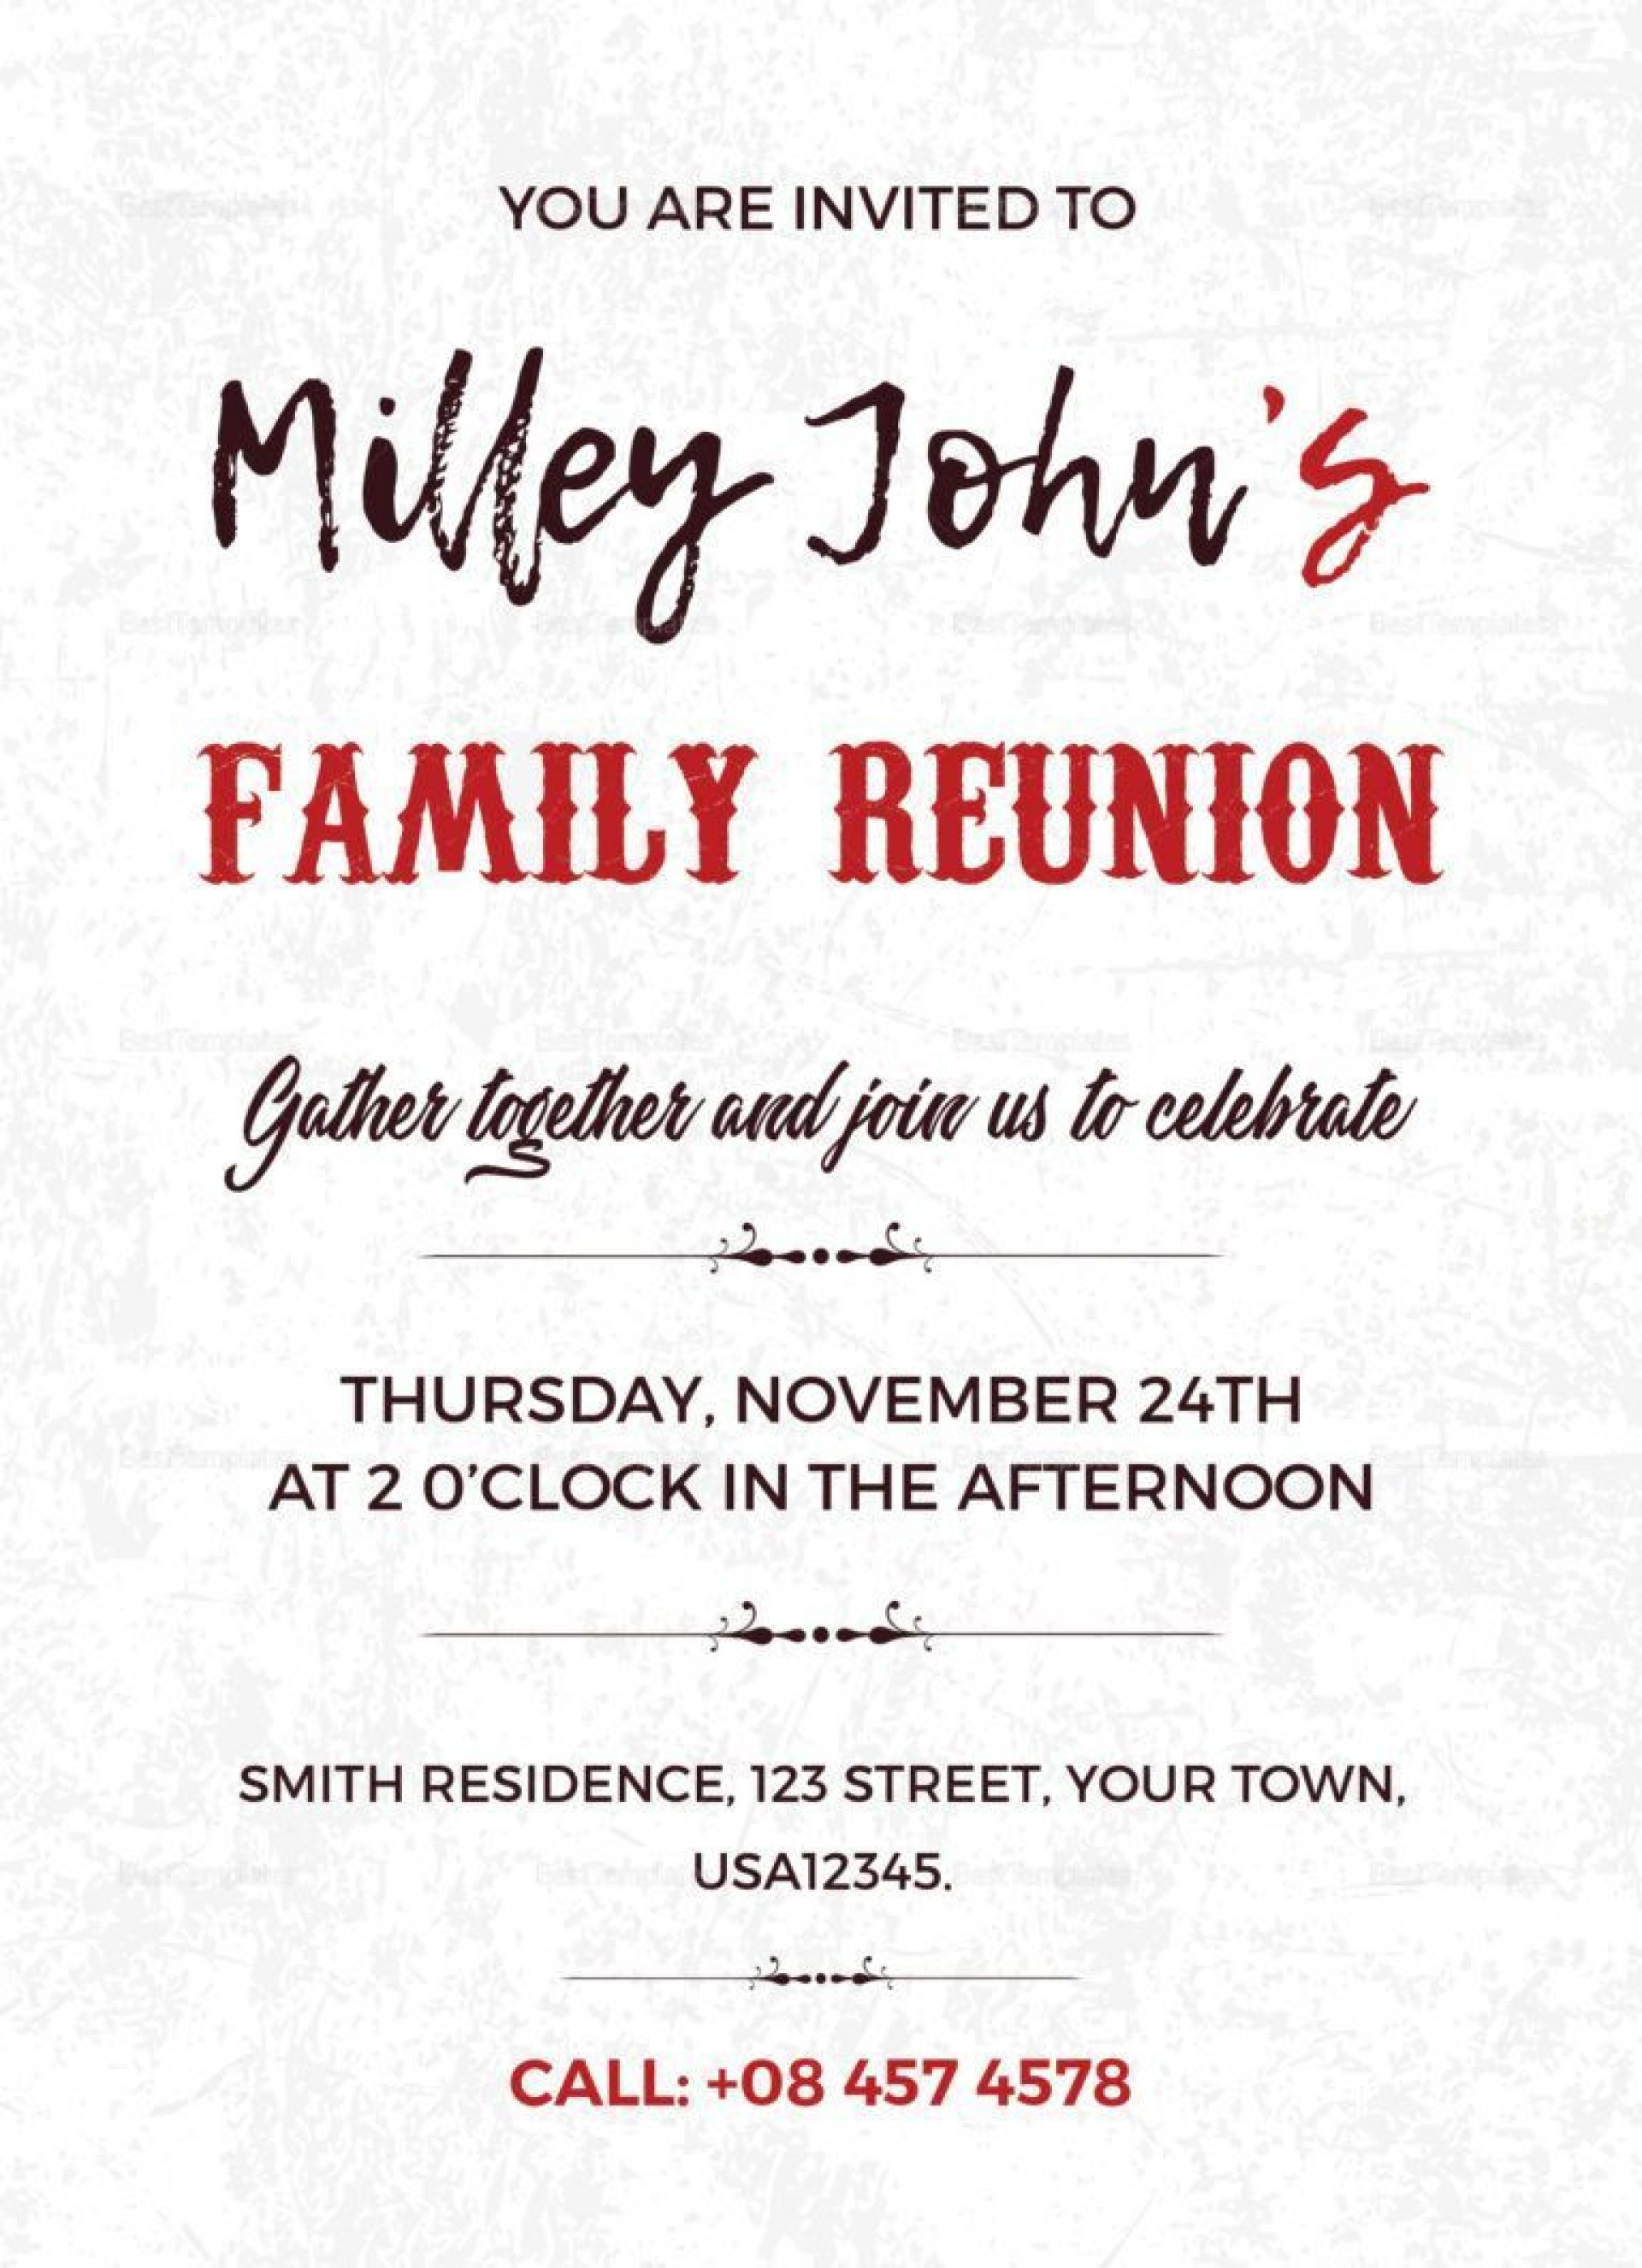 004 Fantastic Family Reunion Invitation Card Template High Resolution 1920